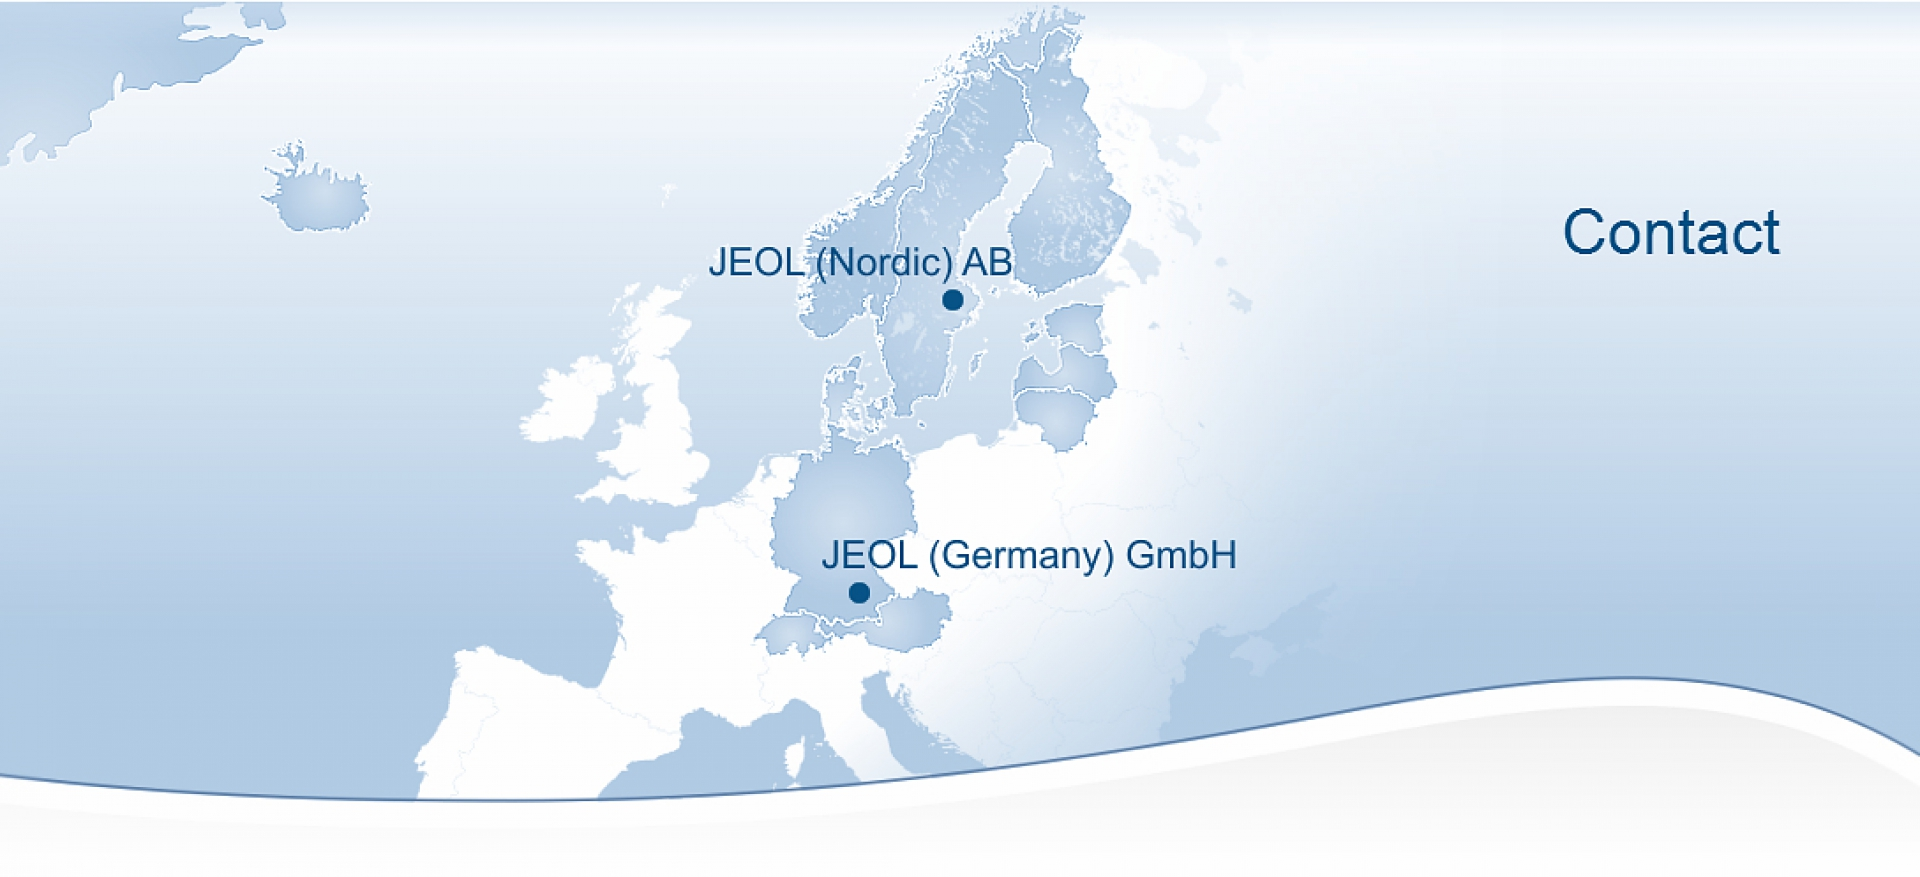 JEOL (Nordic) AB - Contact Information and Directions